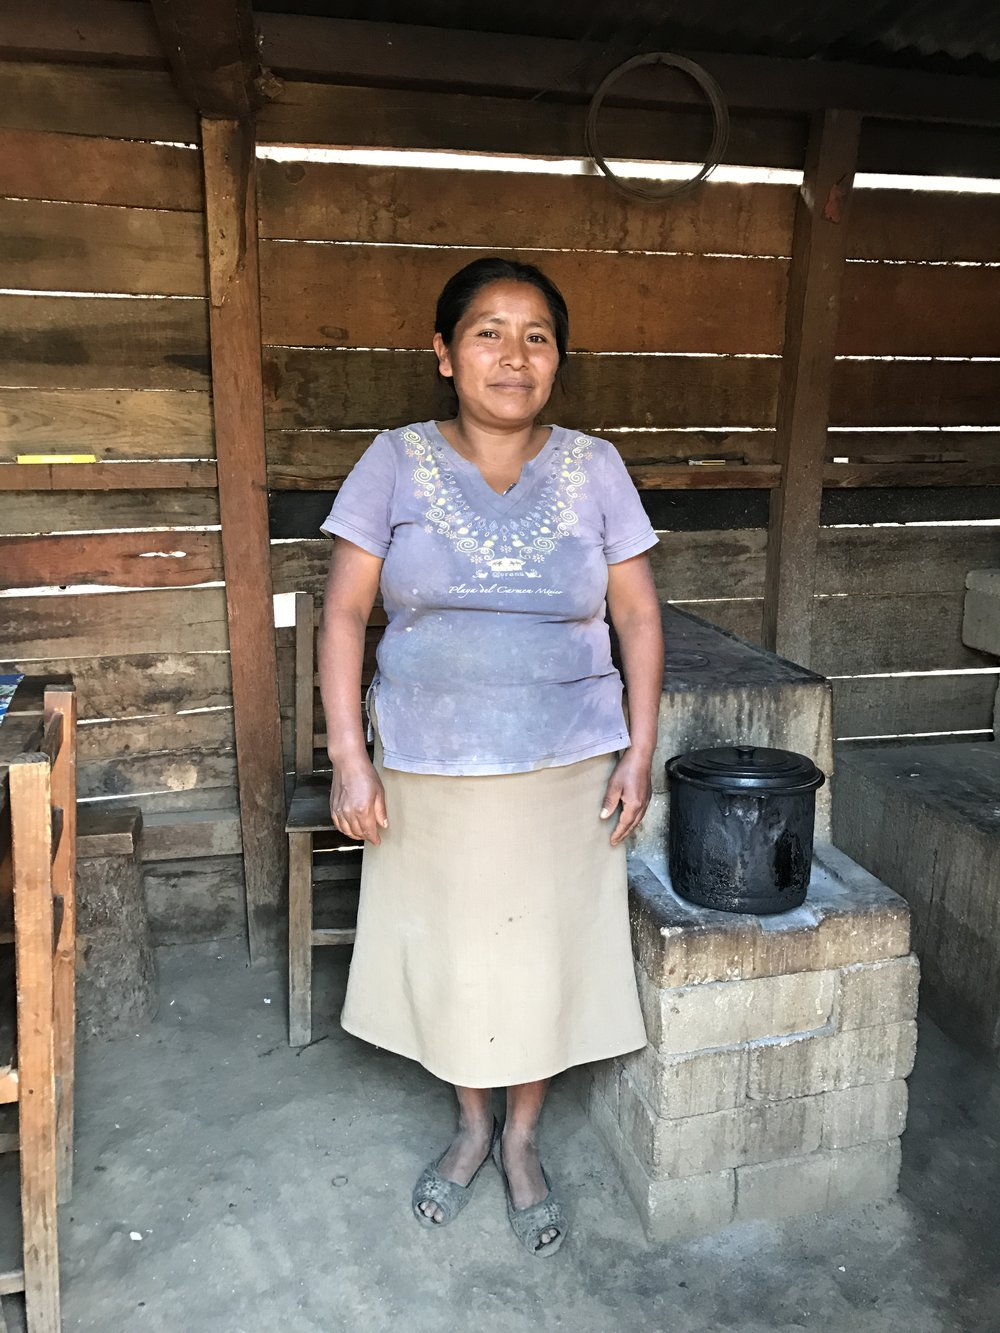 ONIL Stove user in Mexico visited during a verification site visit in 2017.